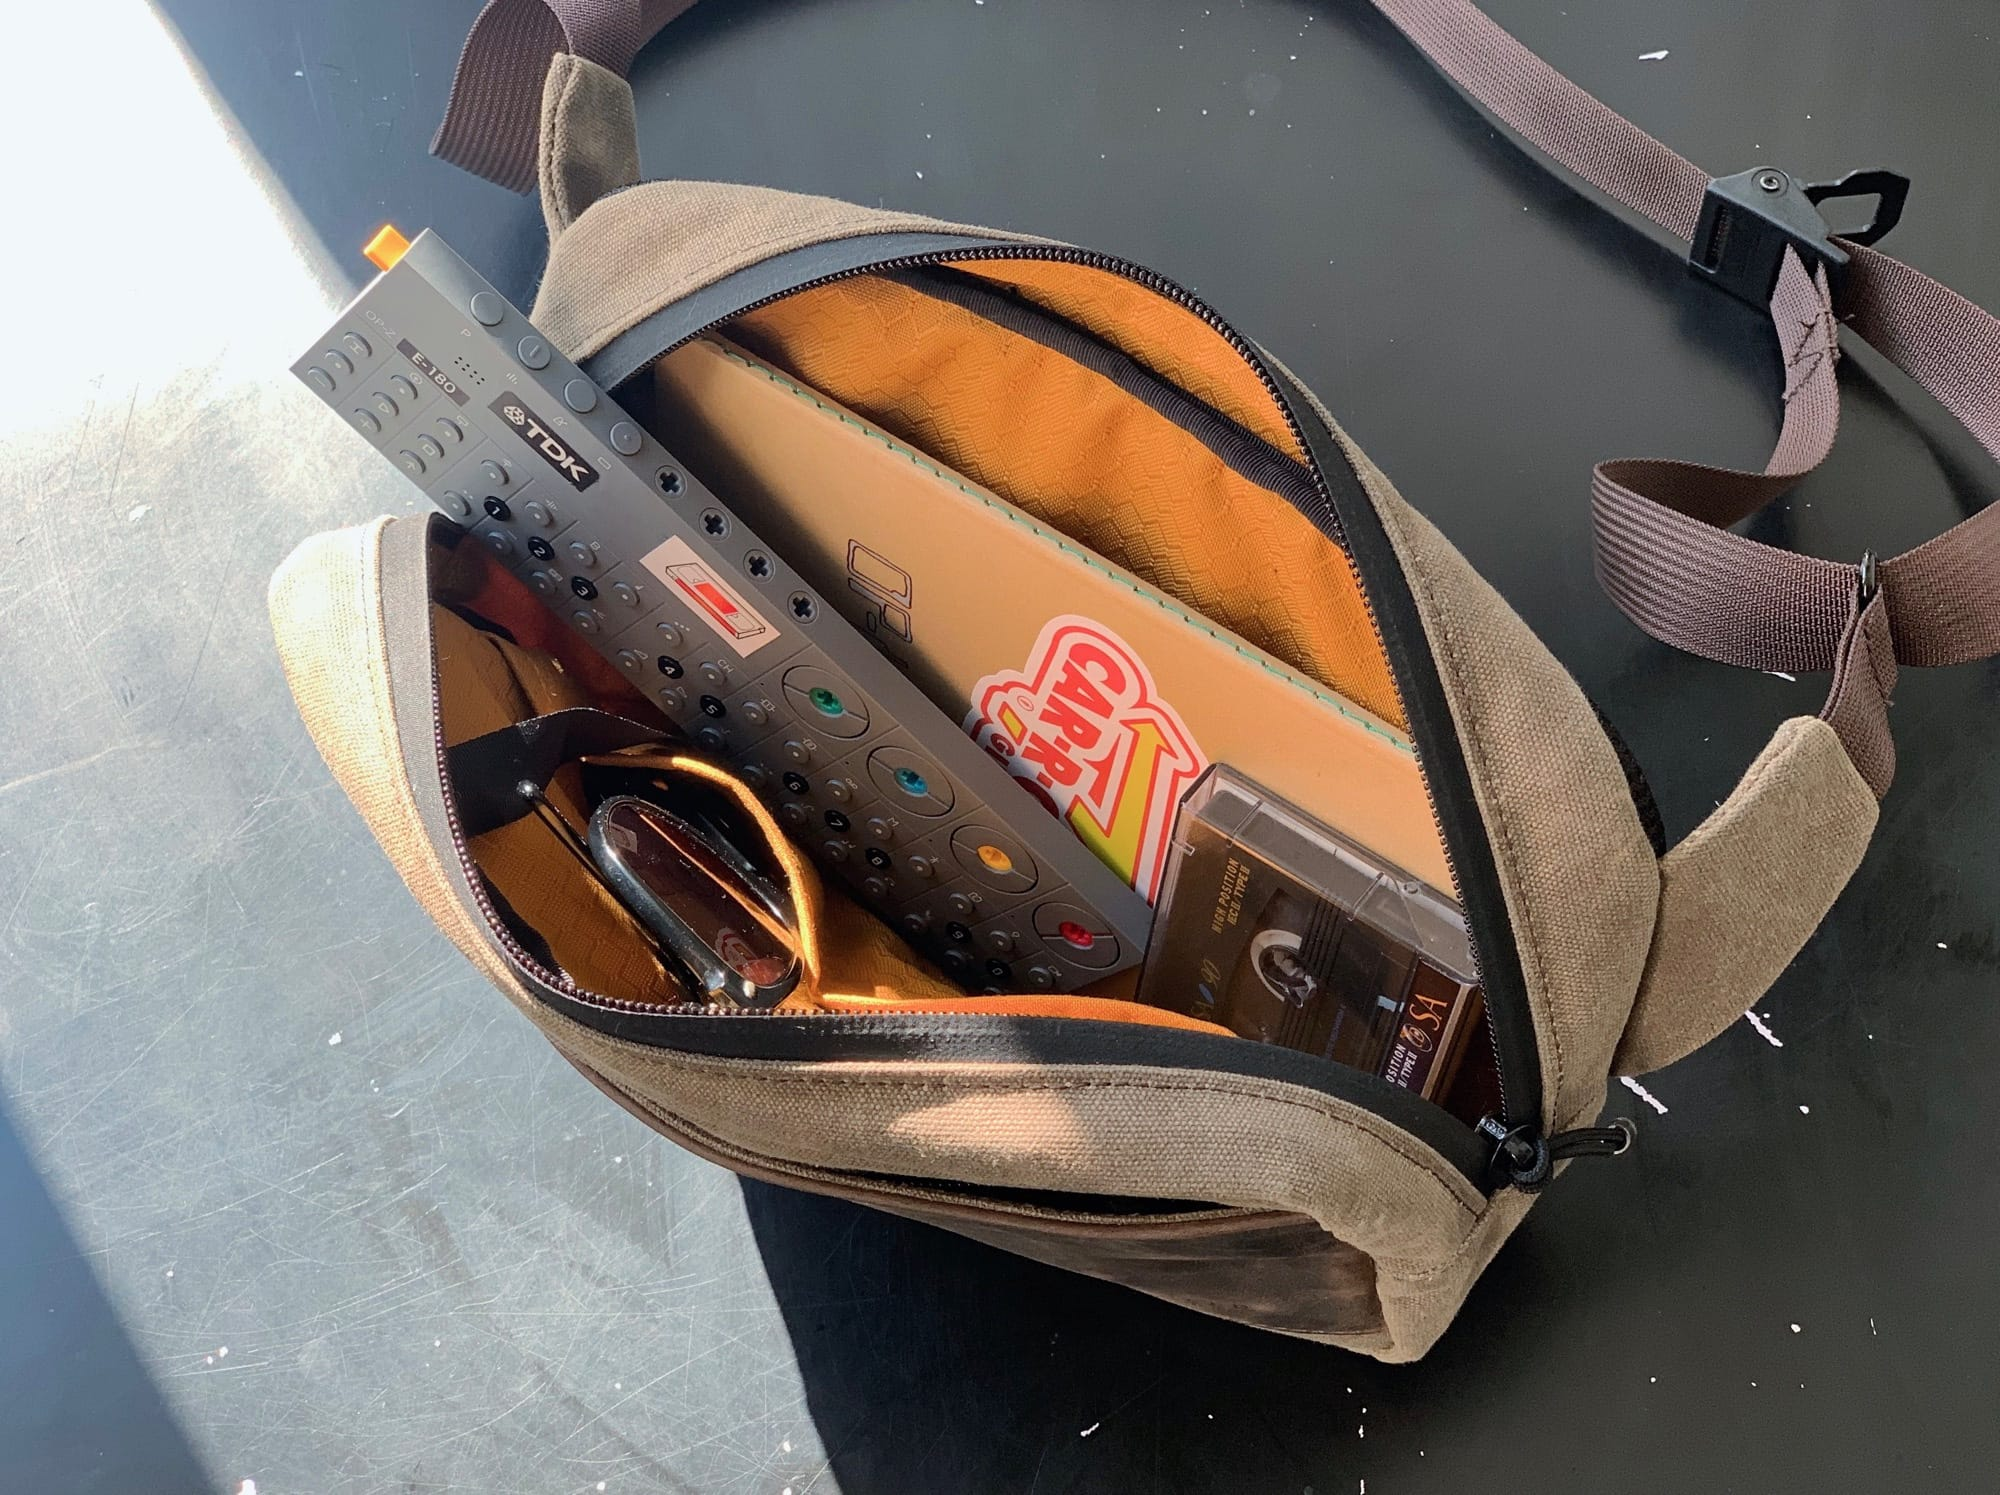 The Sutter Sling carries everything a hipster needs to survive.